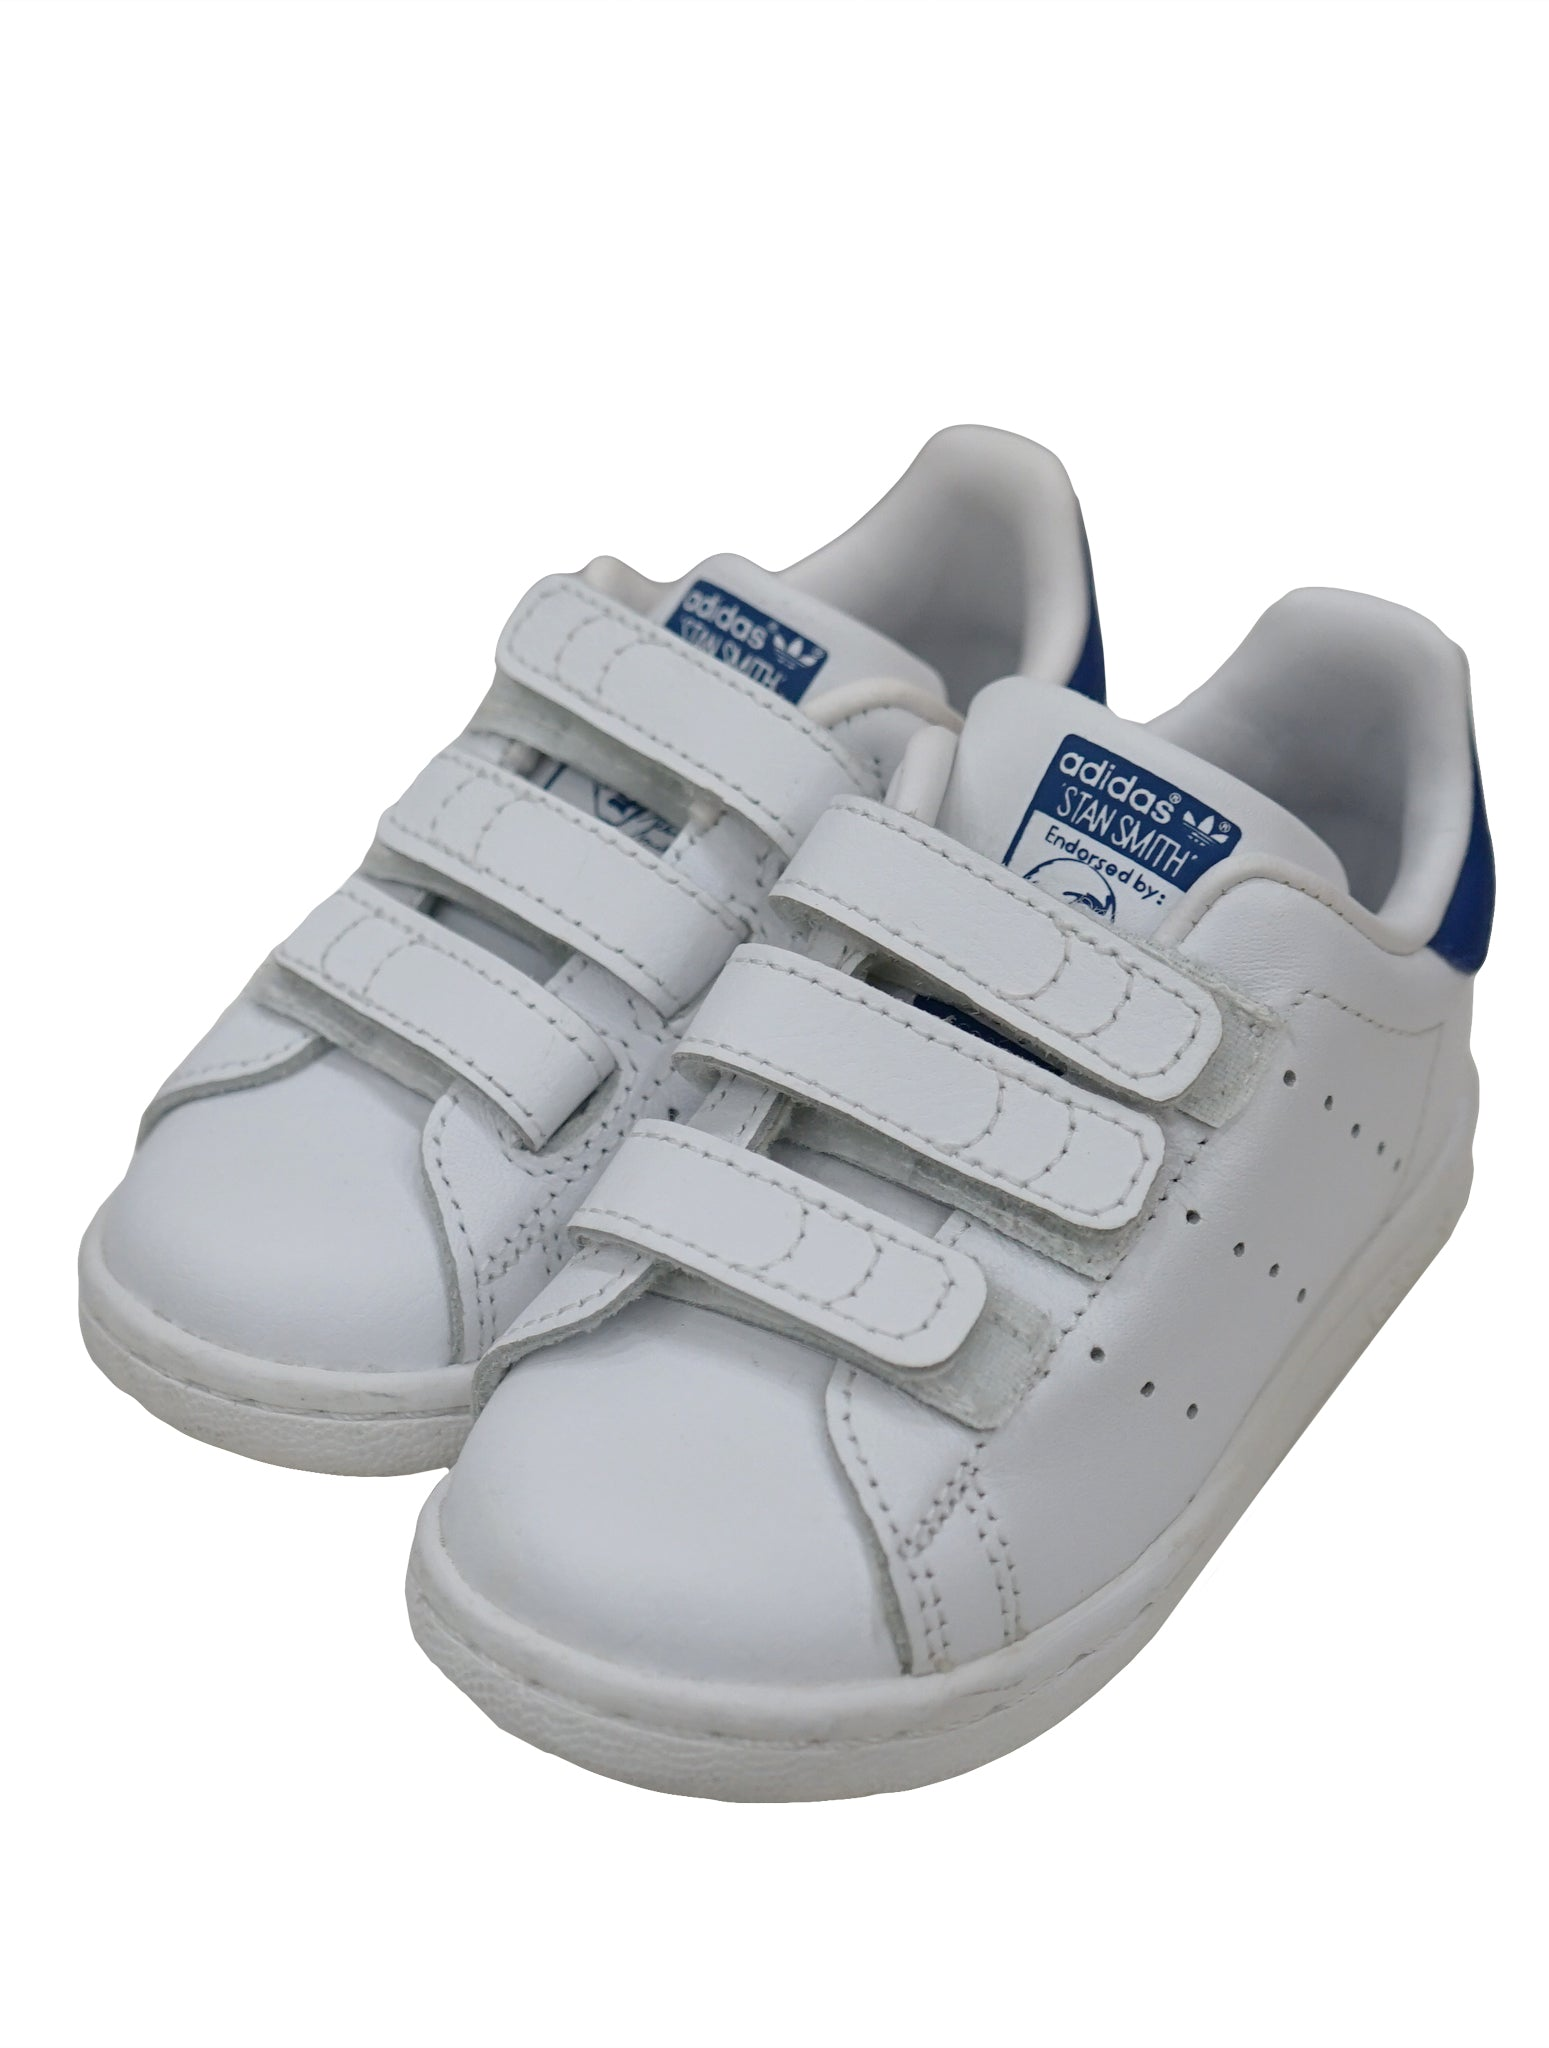 BABY BOY STAN SMITH SHOES